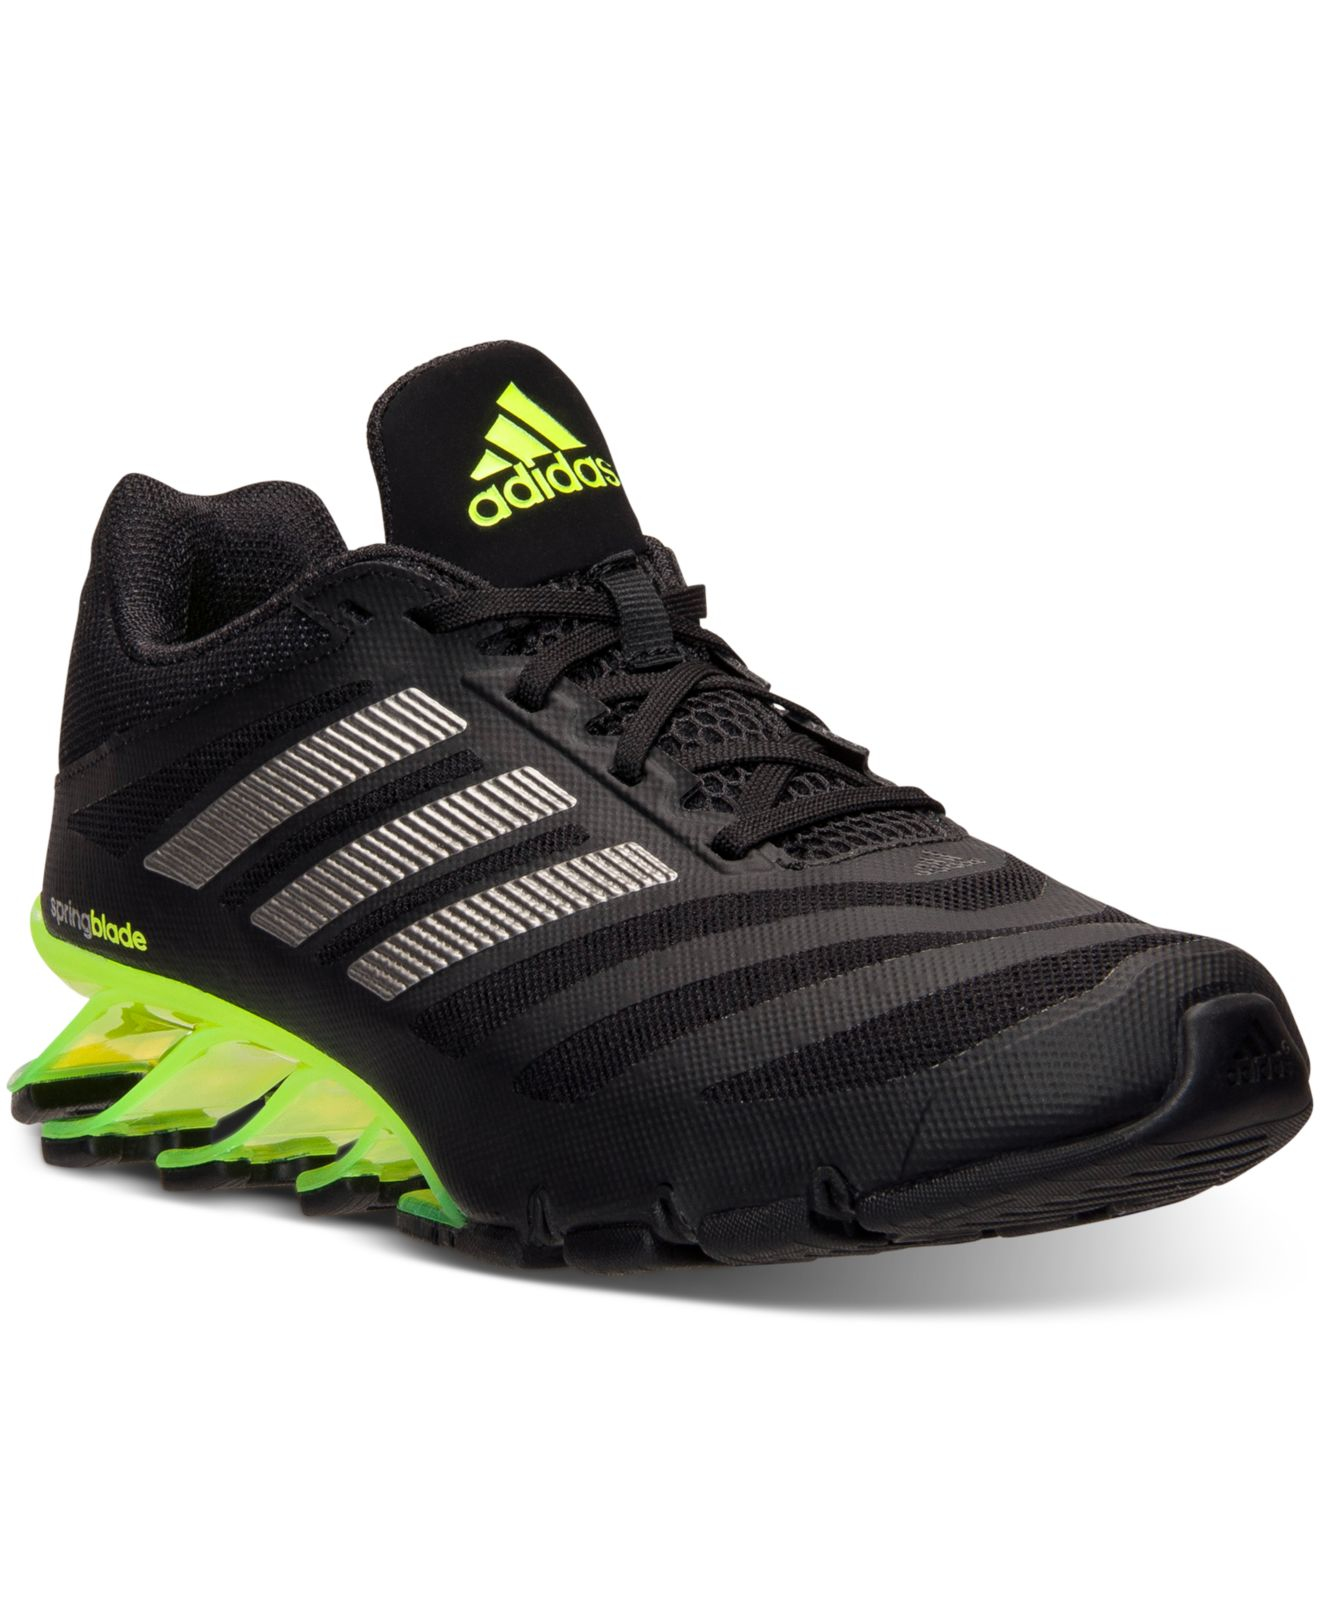 reputable site 104d5 1f5bb closeout lyst adidas mens springblade ignite running sneakers from finish  line in 0564c 5802b